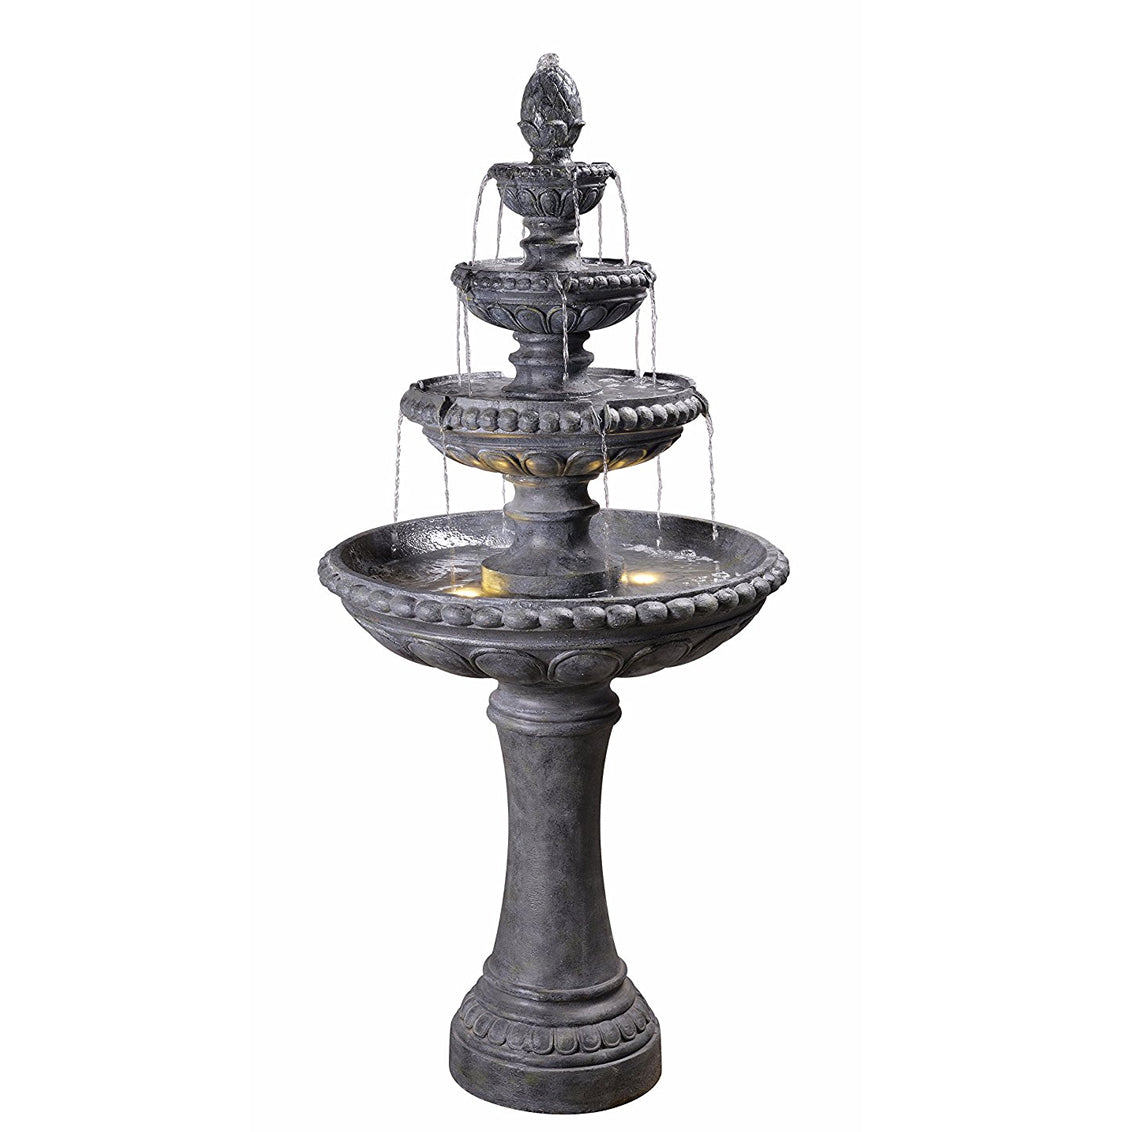 Tucson Outdoor Floor Fountain - Soothing Walls